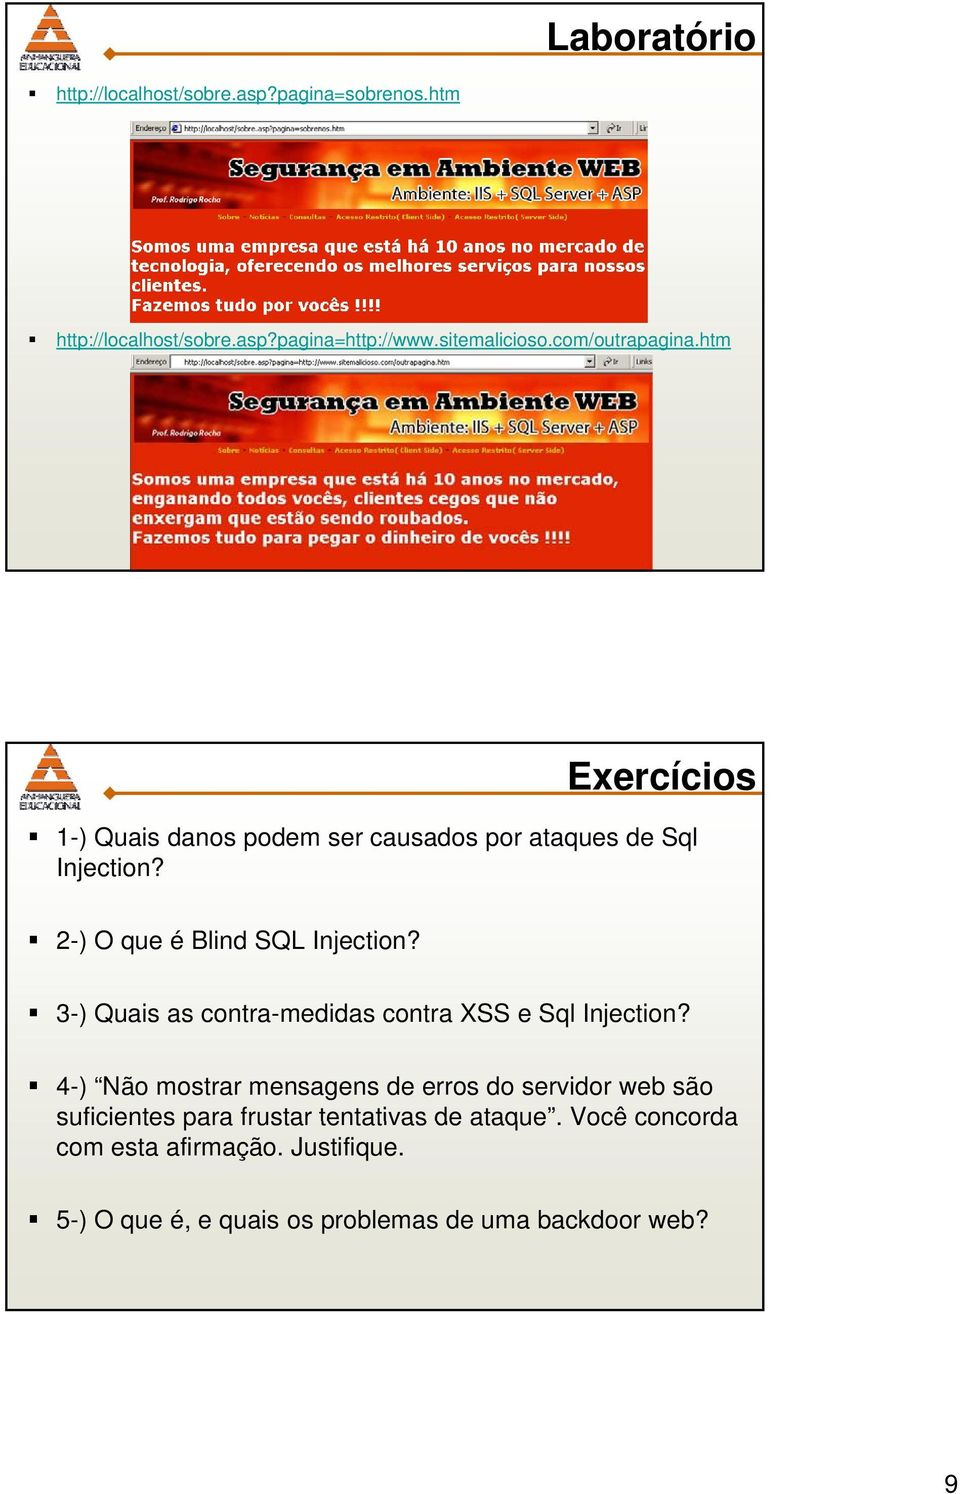 2-) O que é Blind SQL Injection? 3-) Quais as contra-medidas contra XSS e Sql Injection?